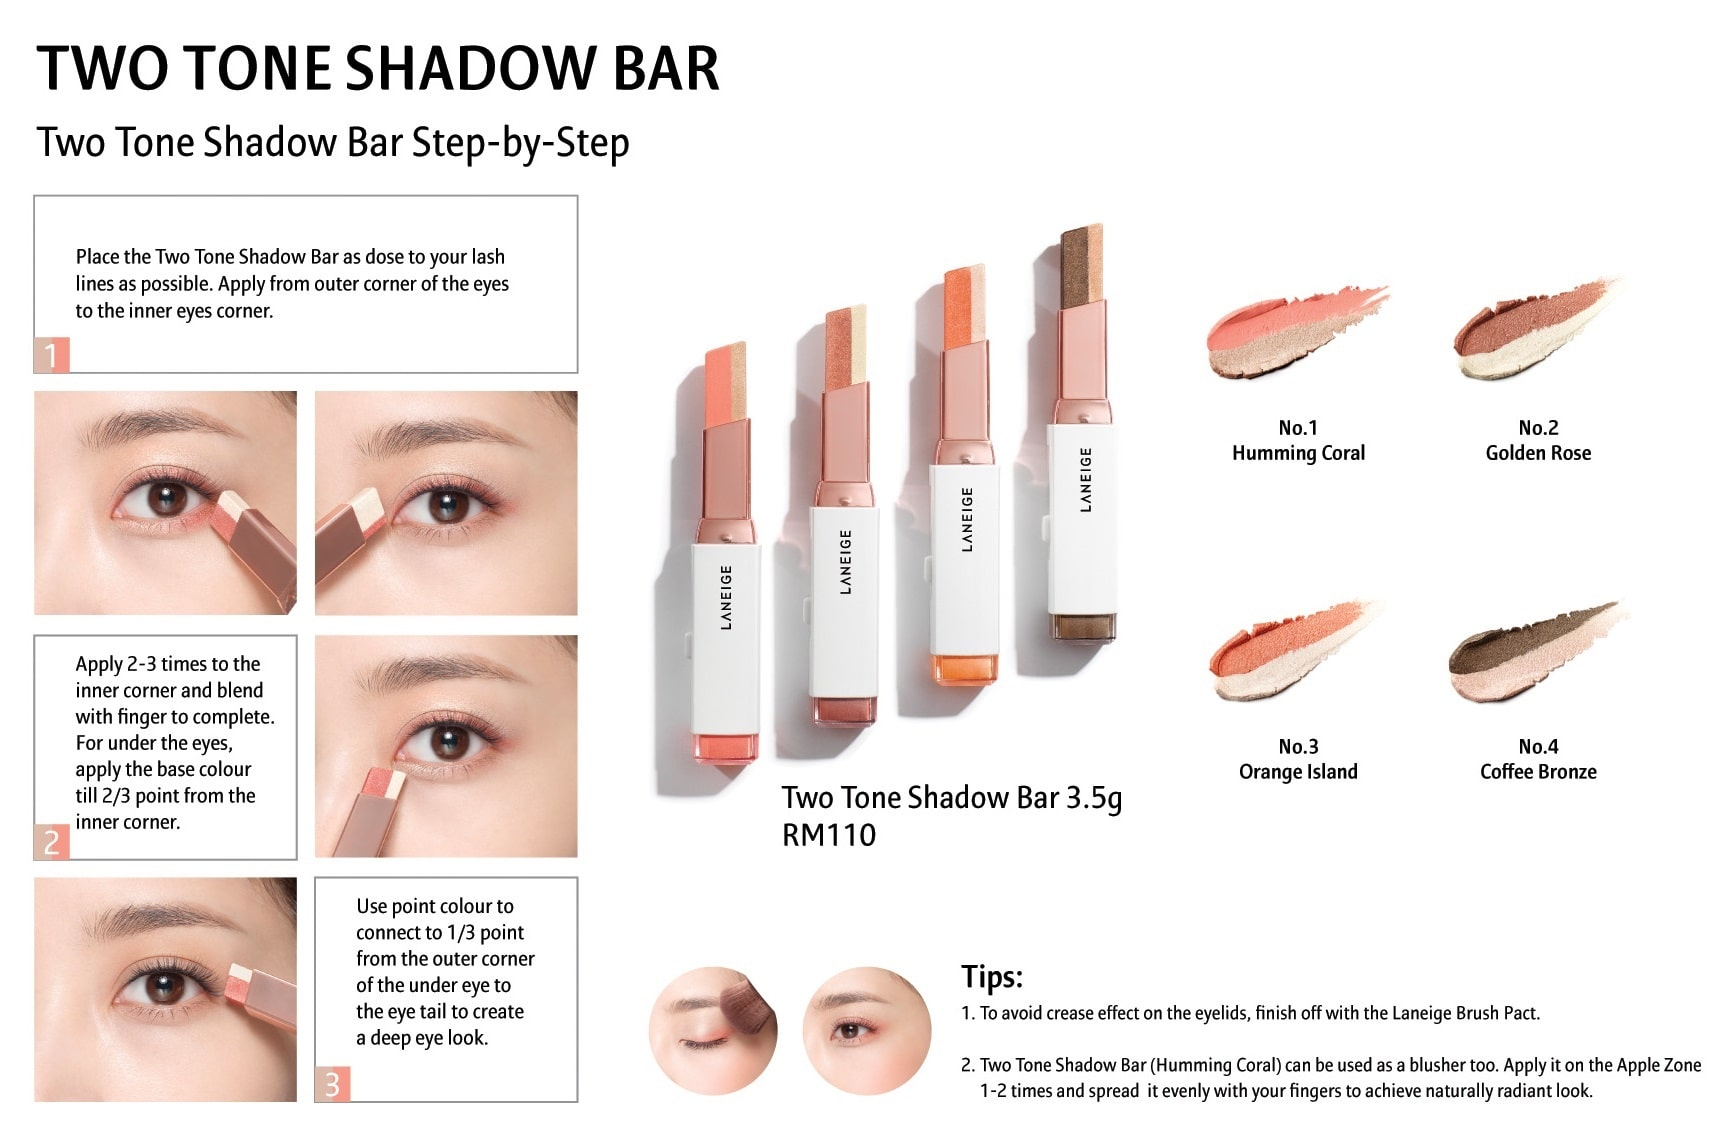 LANEIGE Two Tone Shadow Bar [04 Coffee Bronze]